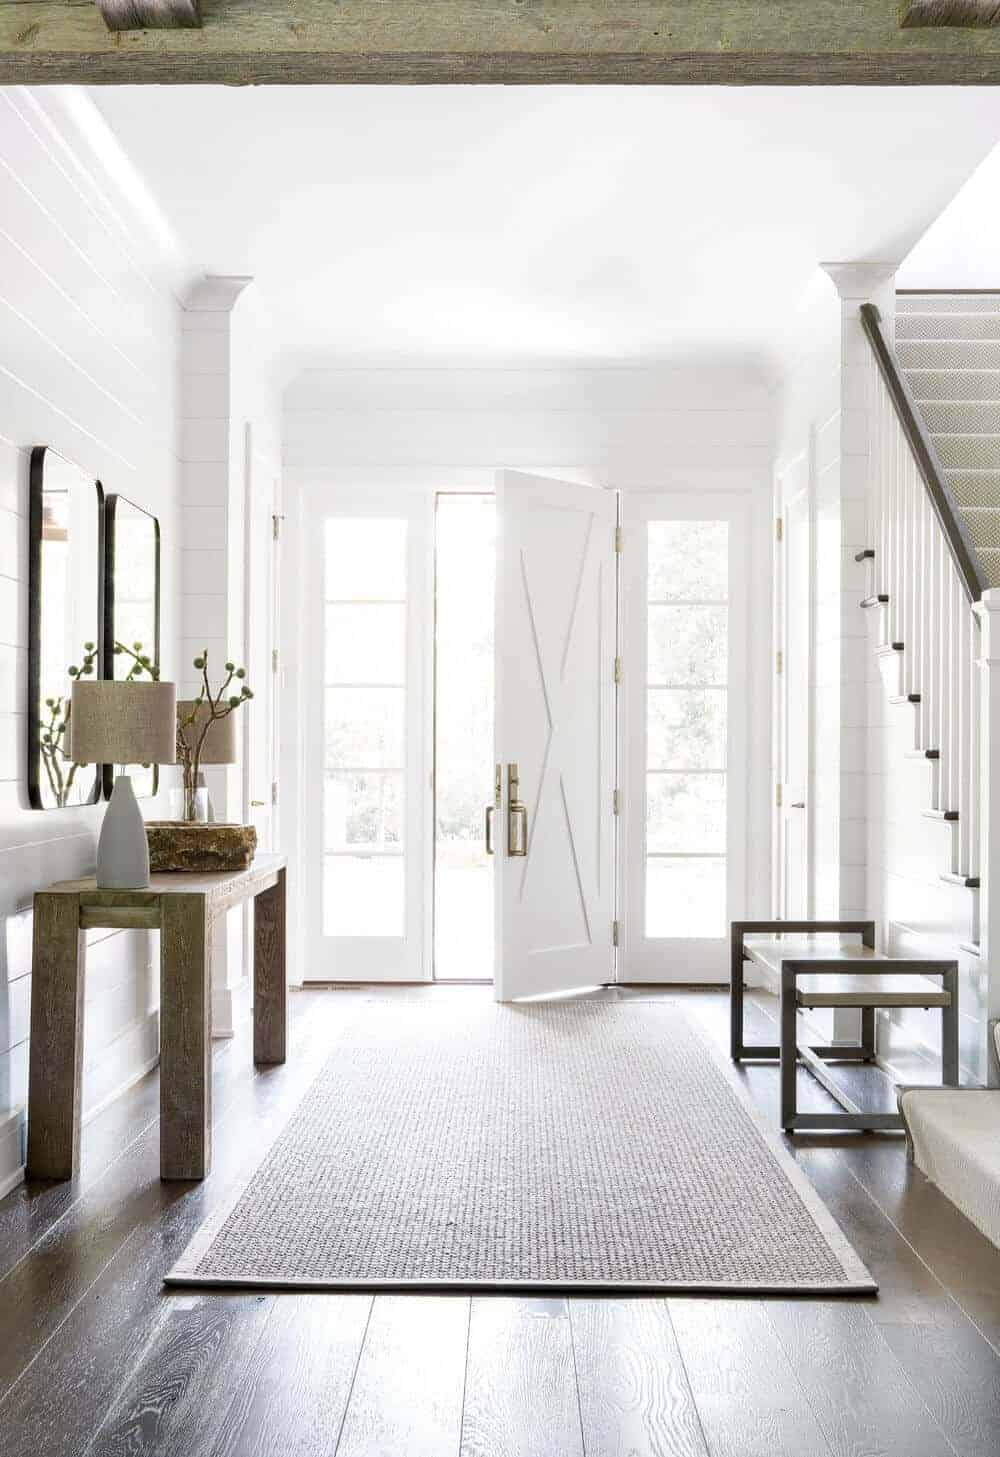 The white wooden door has a distinct Farmhouse-style design to it complemented by the white walls that has a shiplap plank finish. These are brightened by the natural lights coming in from the side lighting. There is also a wooden on the side opposite to the wooden console table.